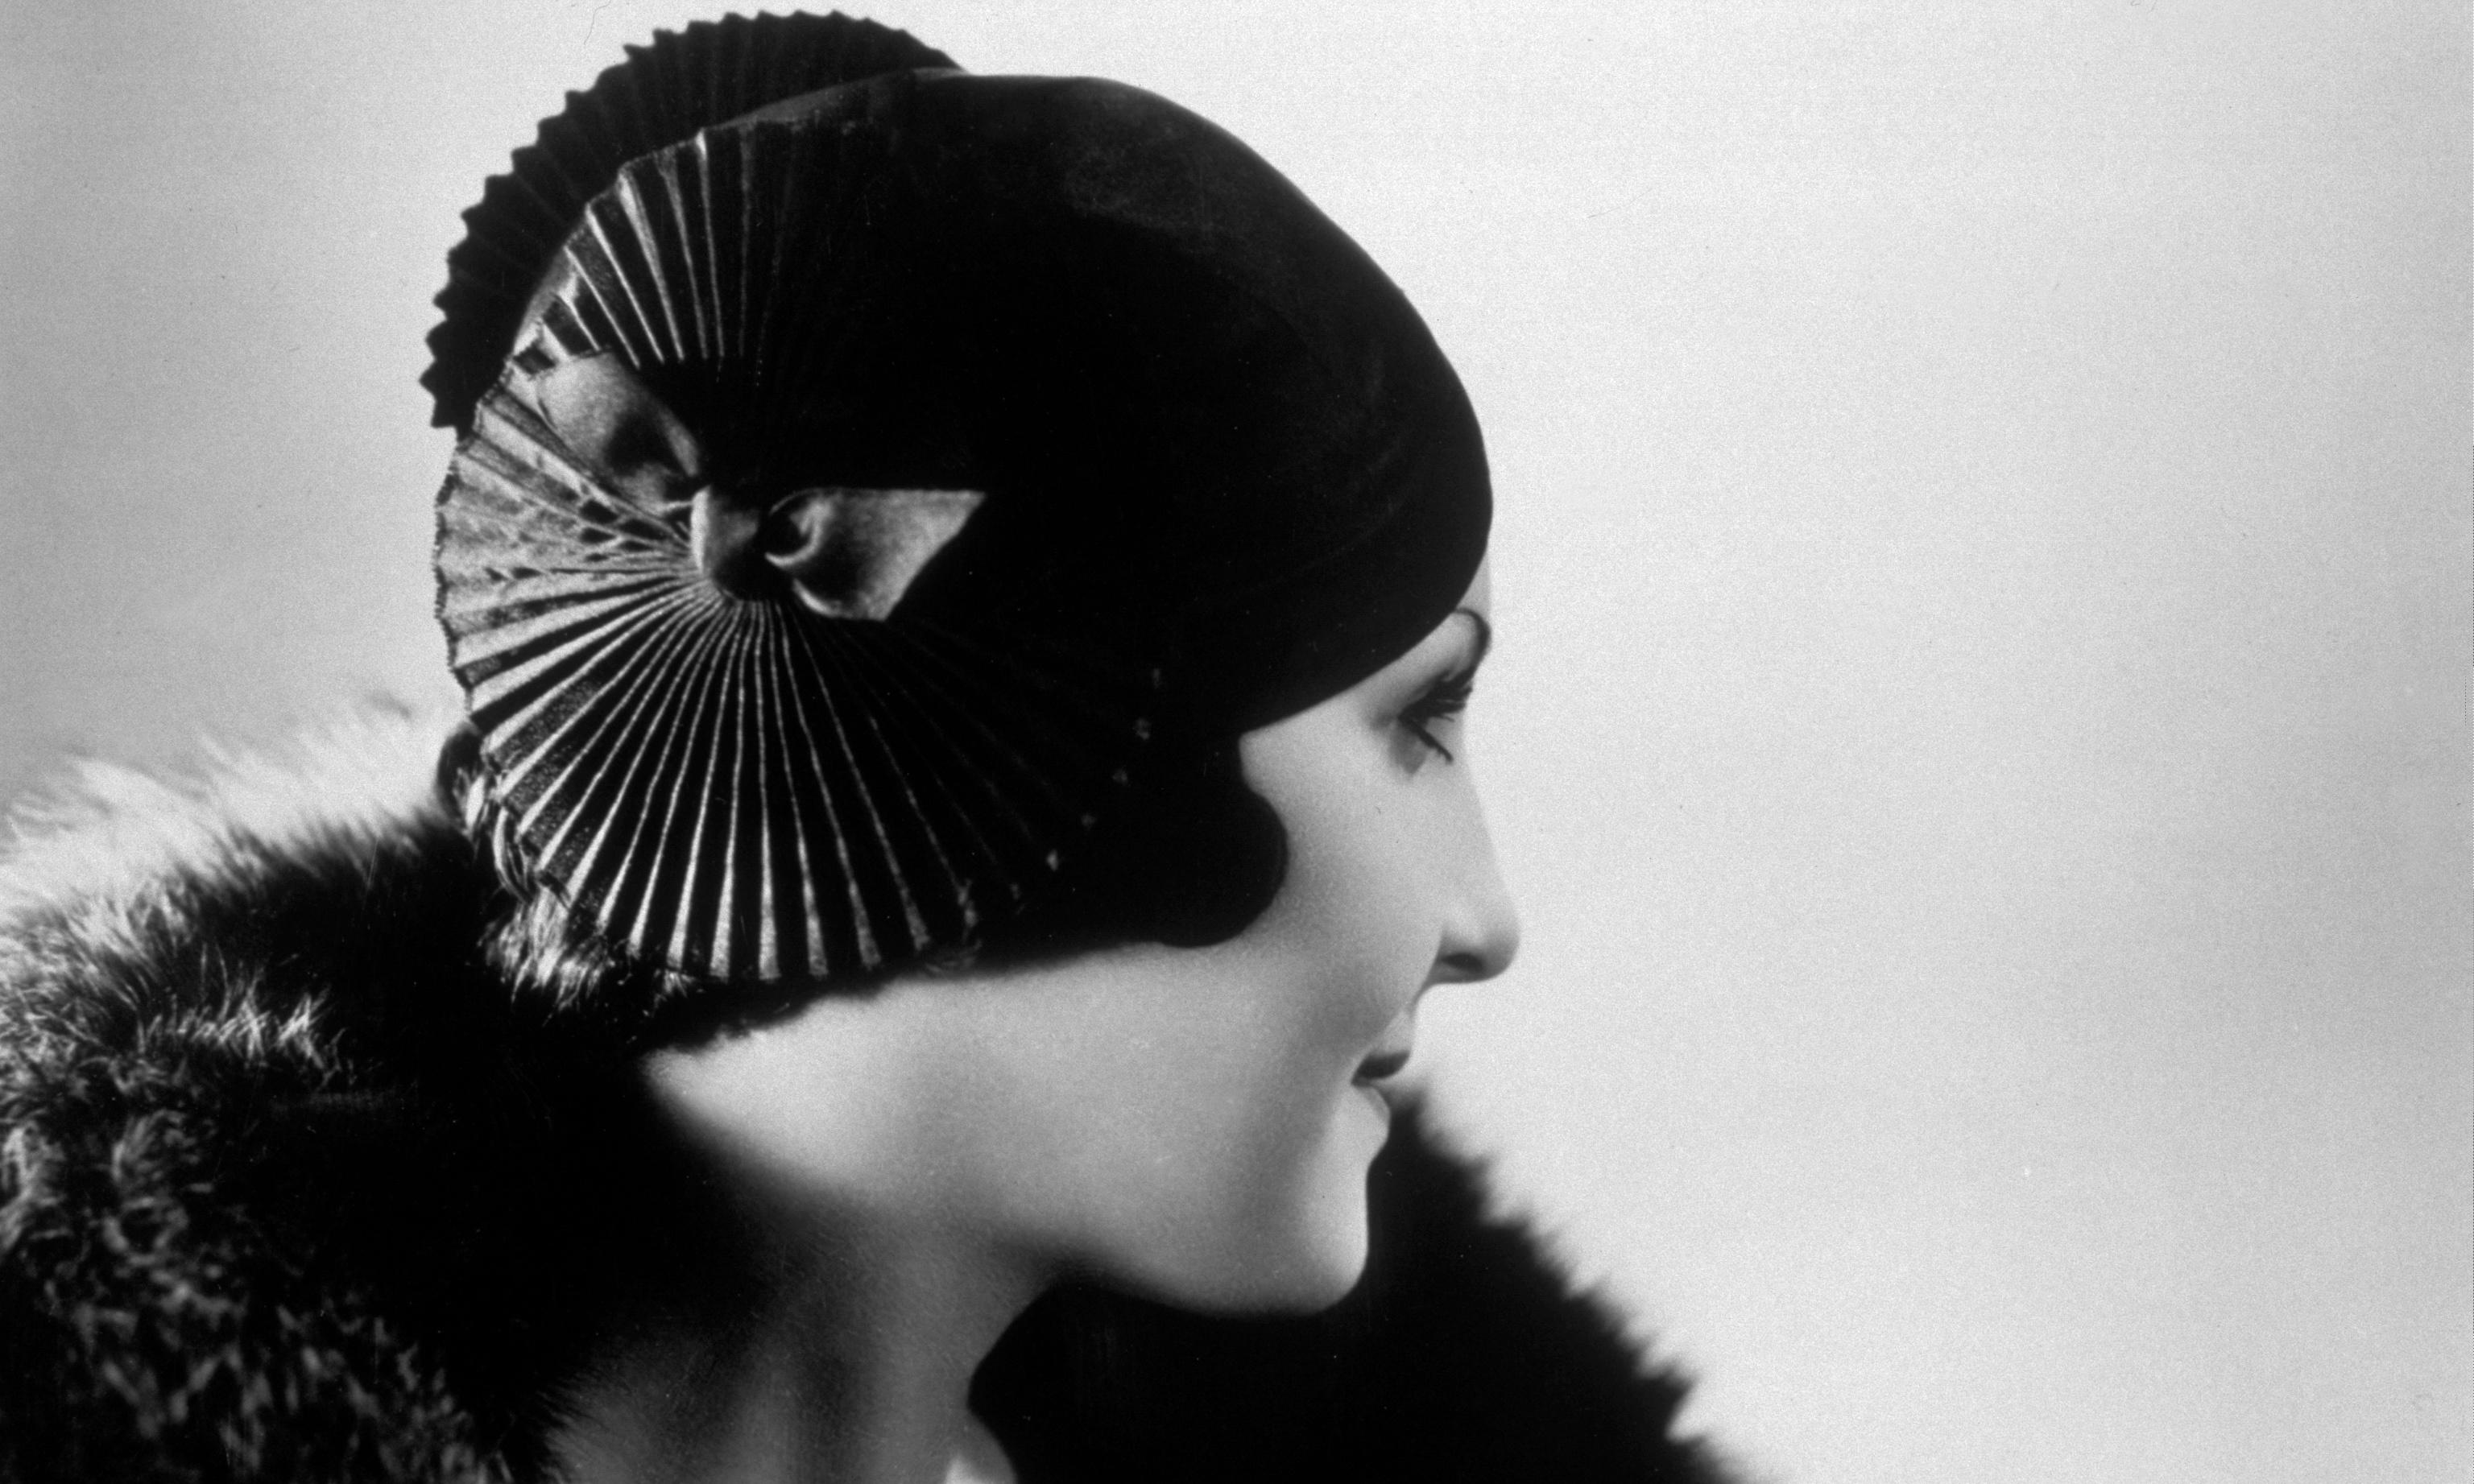 New hats shown in Paris – fashion archive, 14 January 1935